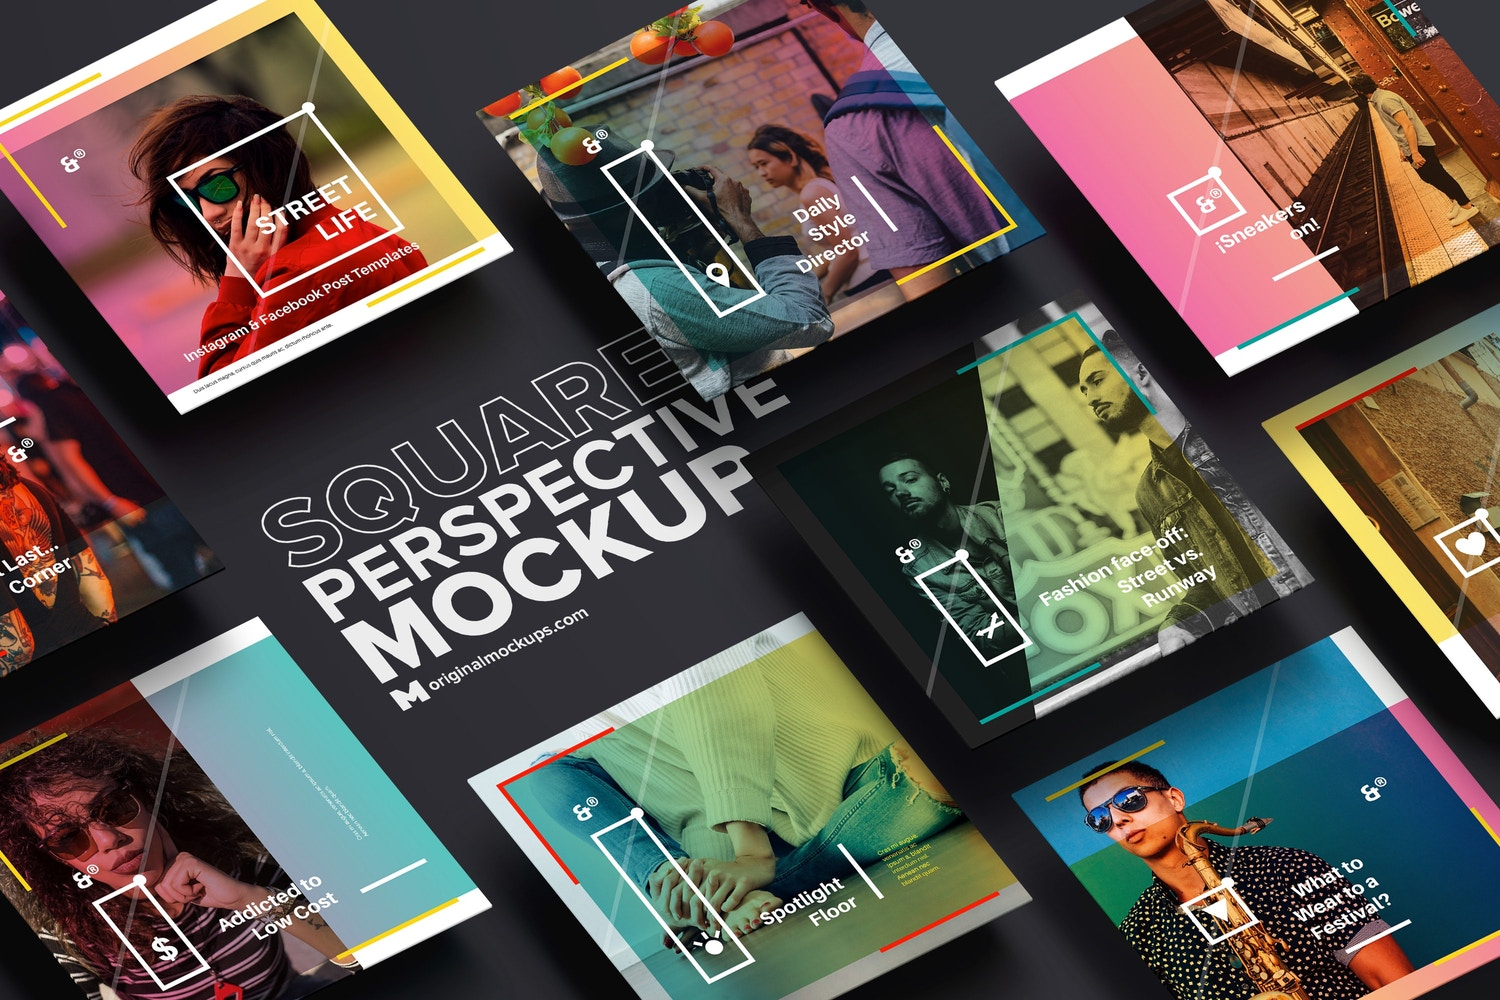 Square Perspective Mockup 01 by Original Mockups on Original Mockups